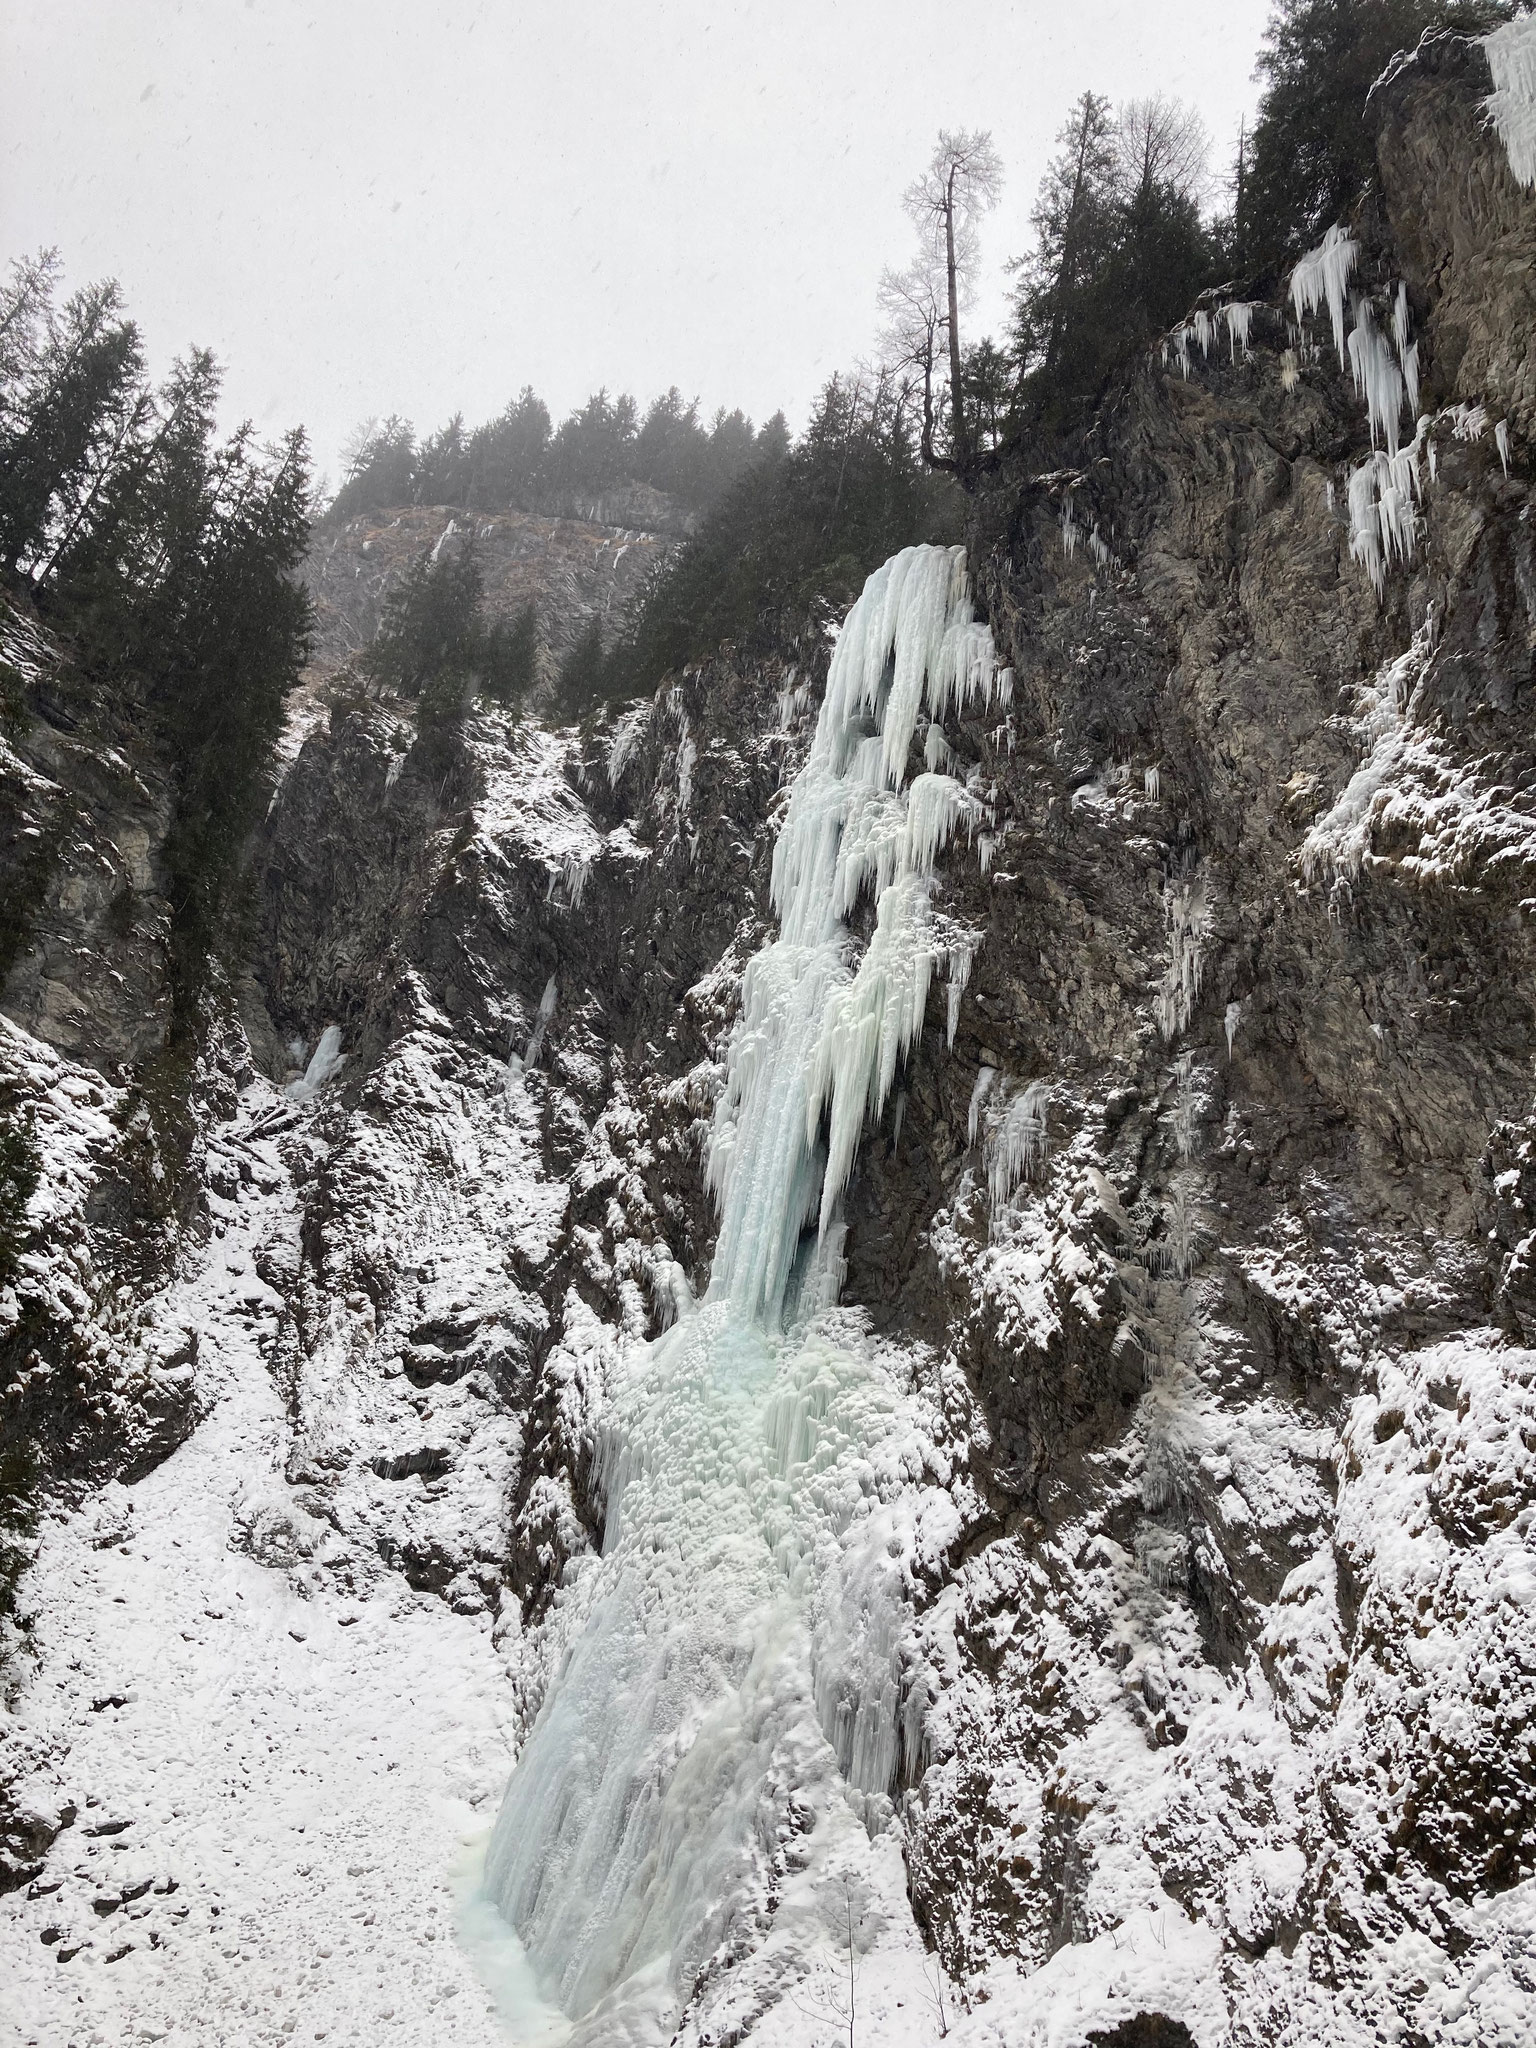 Extremer Eisfall im Lechtal